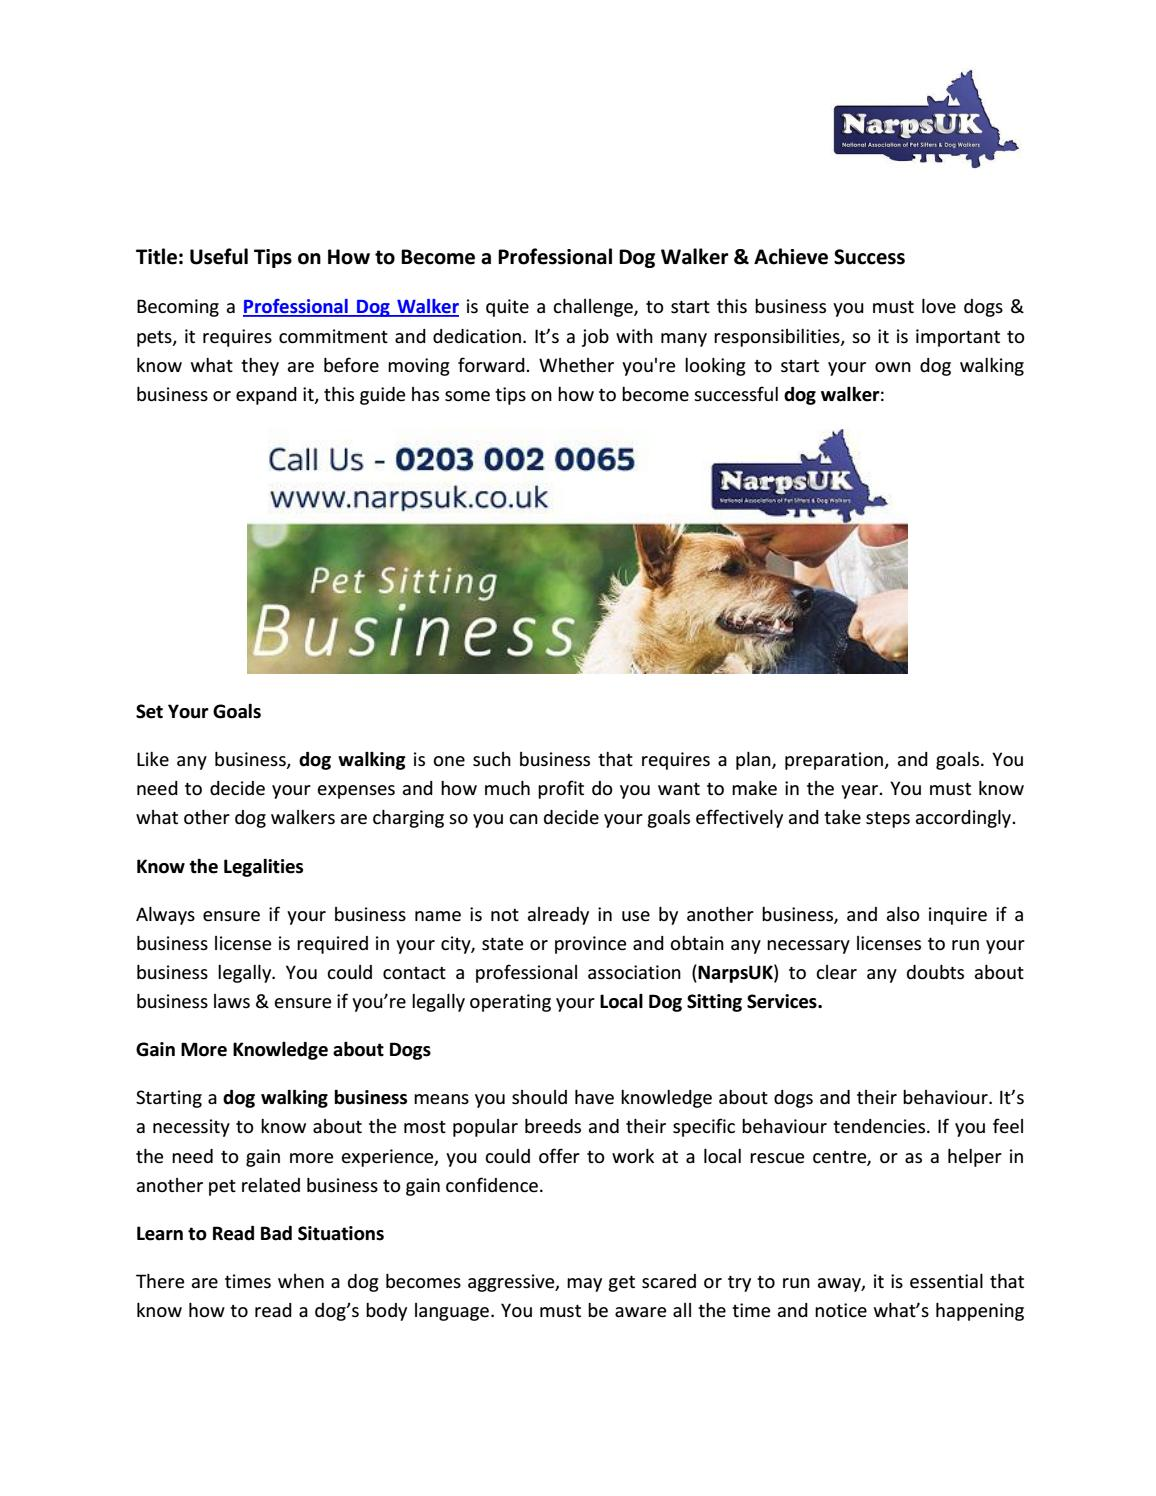 Useful Tips on How to Become a Professional Dog Walker